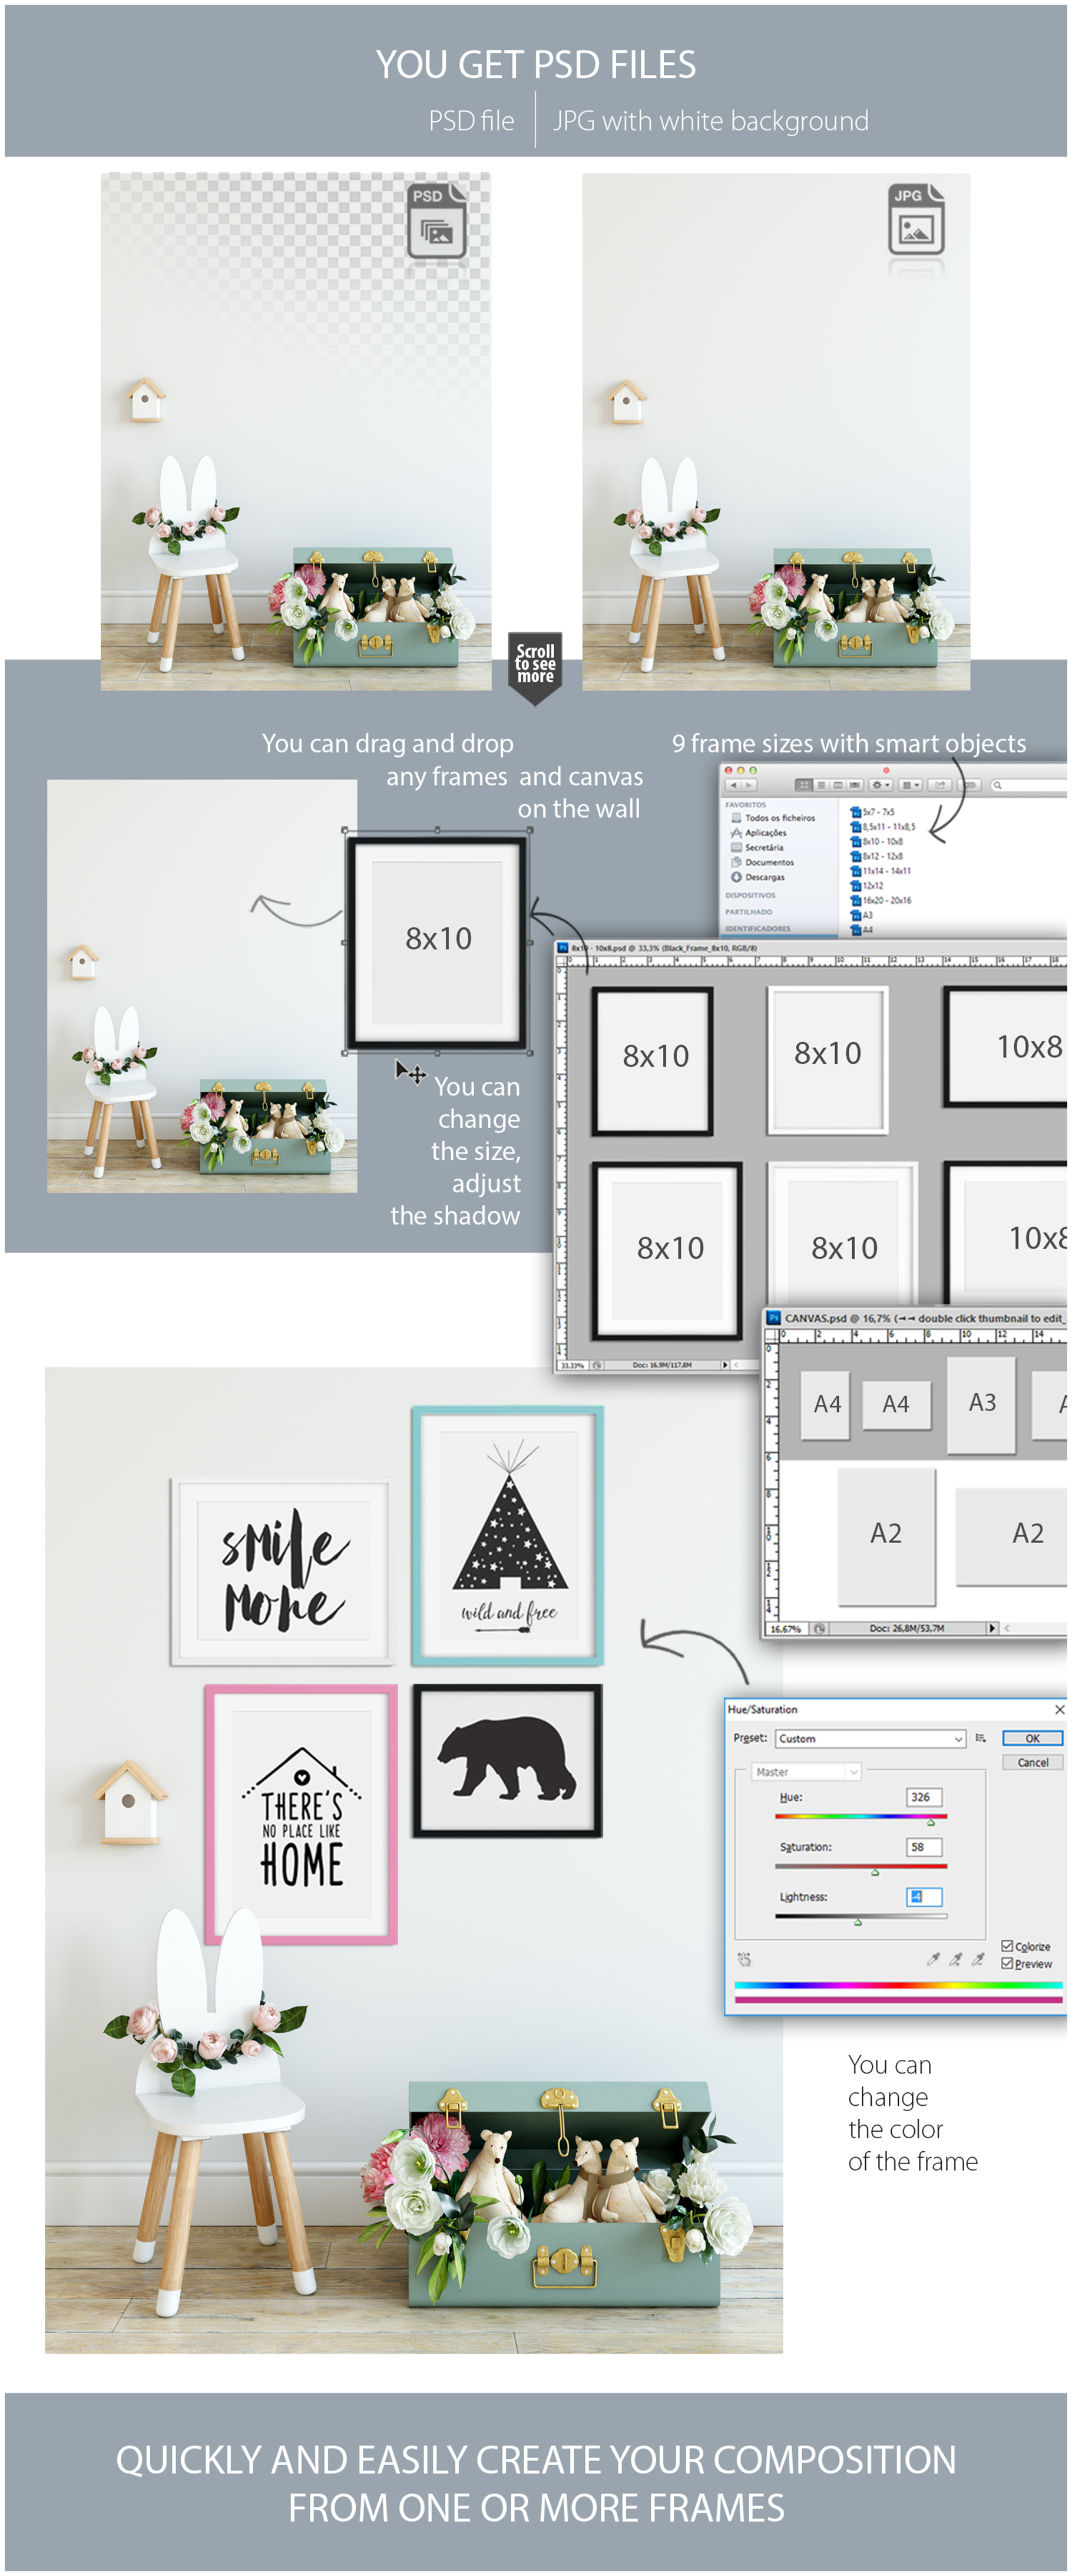 Kids Frames & Wall Mockup Bundle - 5 example image 28